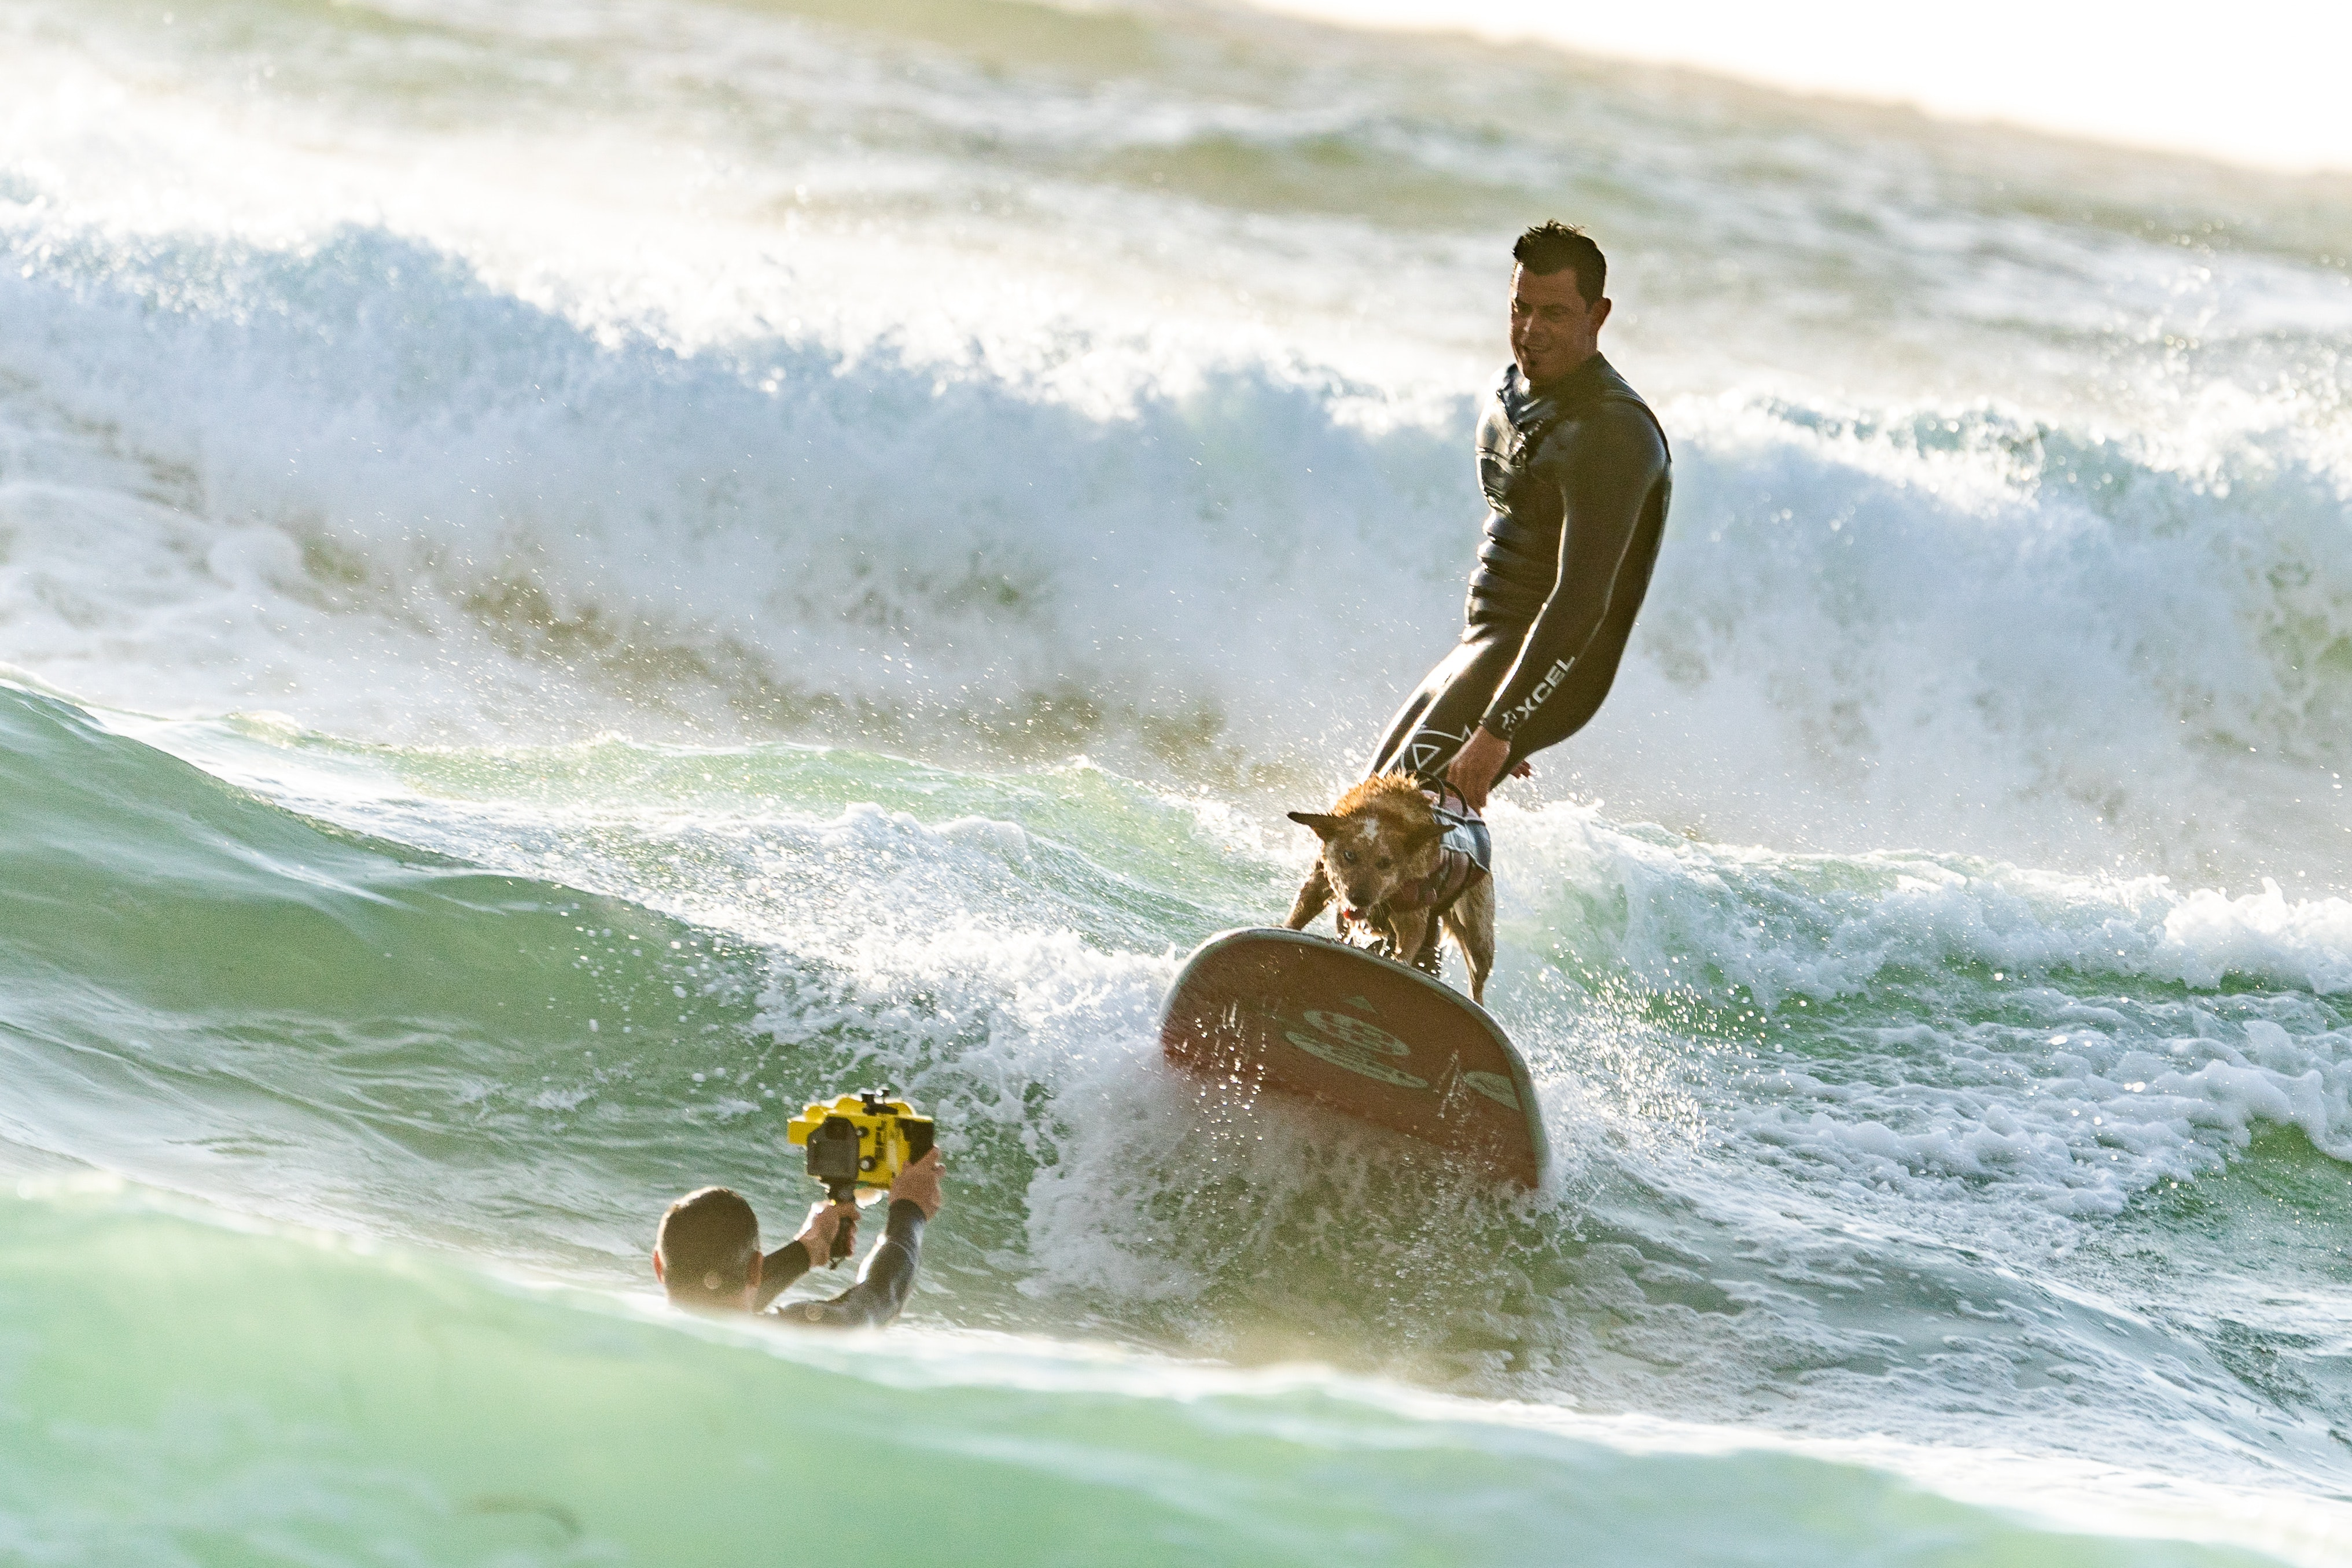 Surfer with his surfer dog surfing · free stock photo.